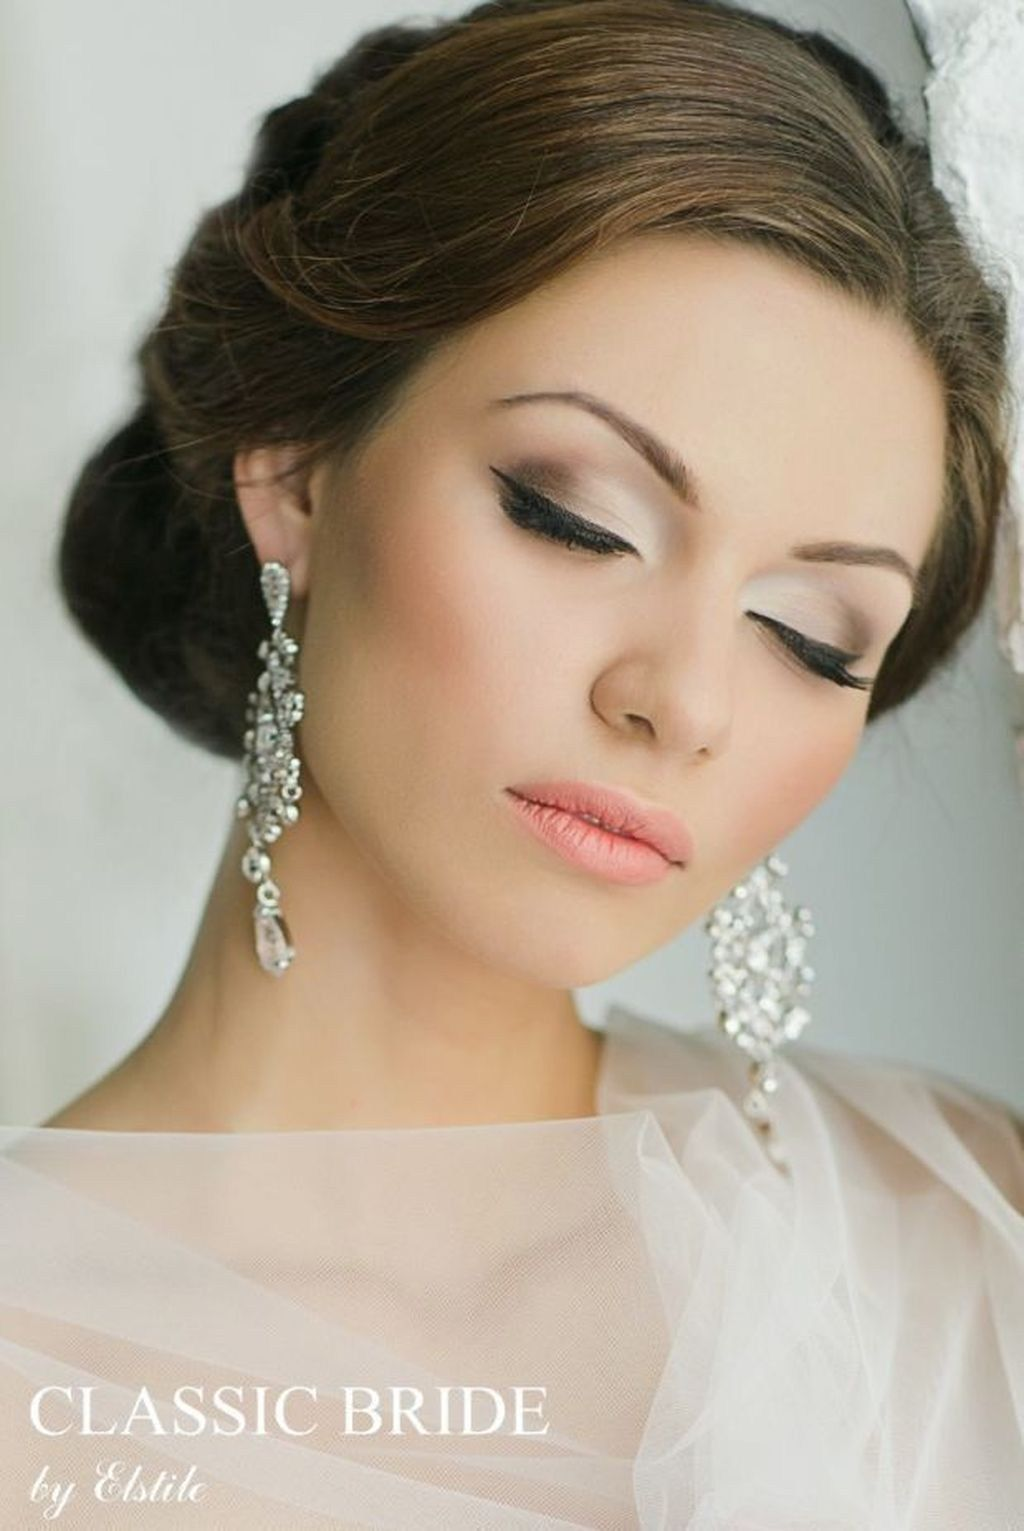 Natural Wedding Makeup Ideas To Makes You Look Beautiful